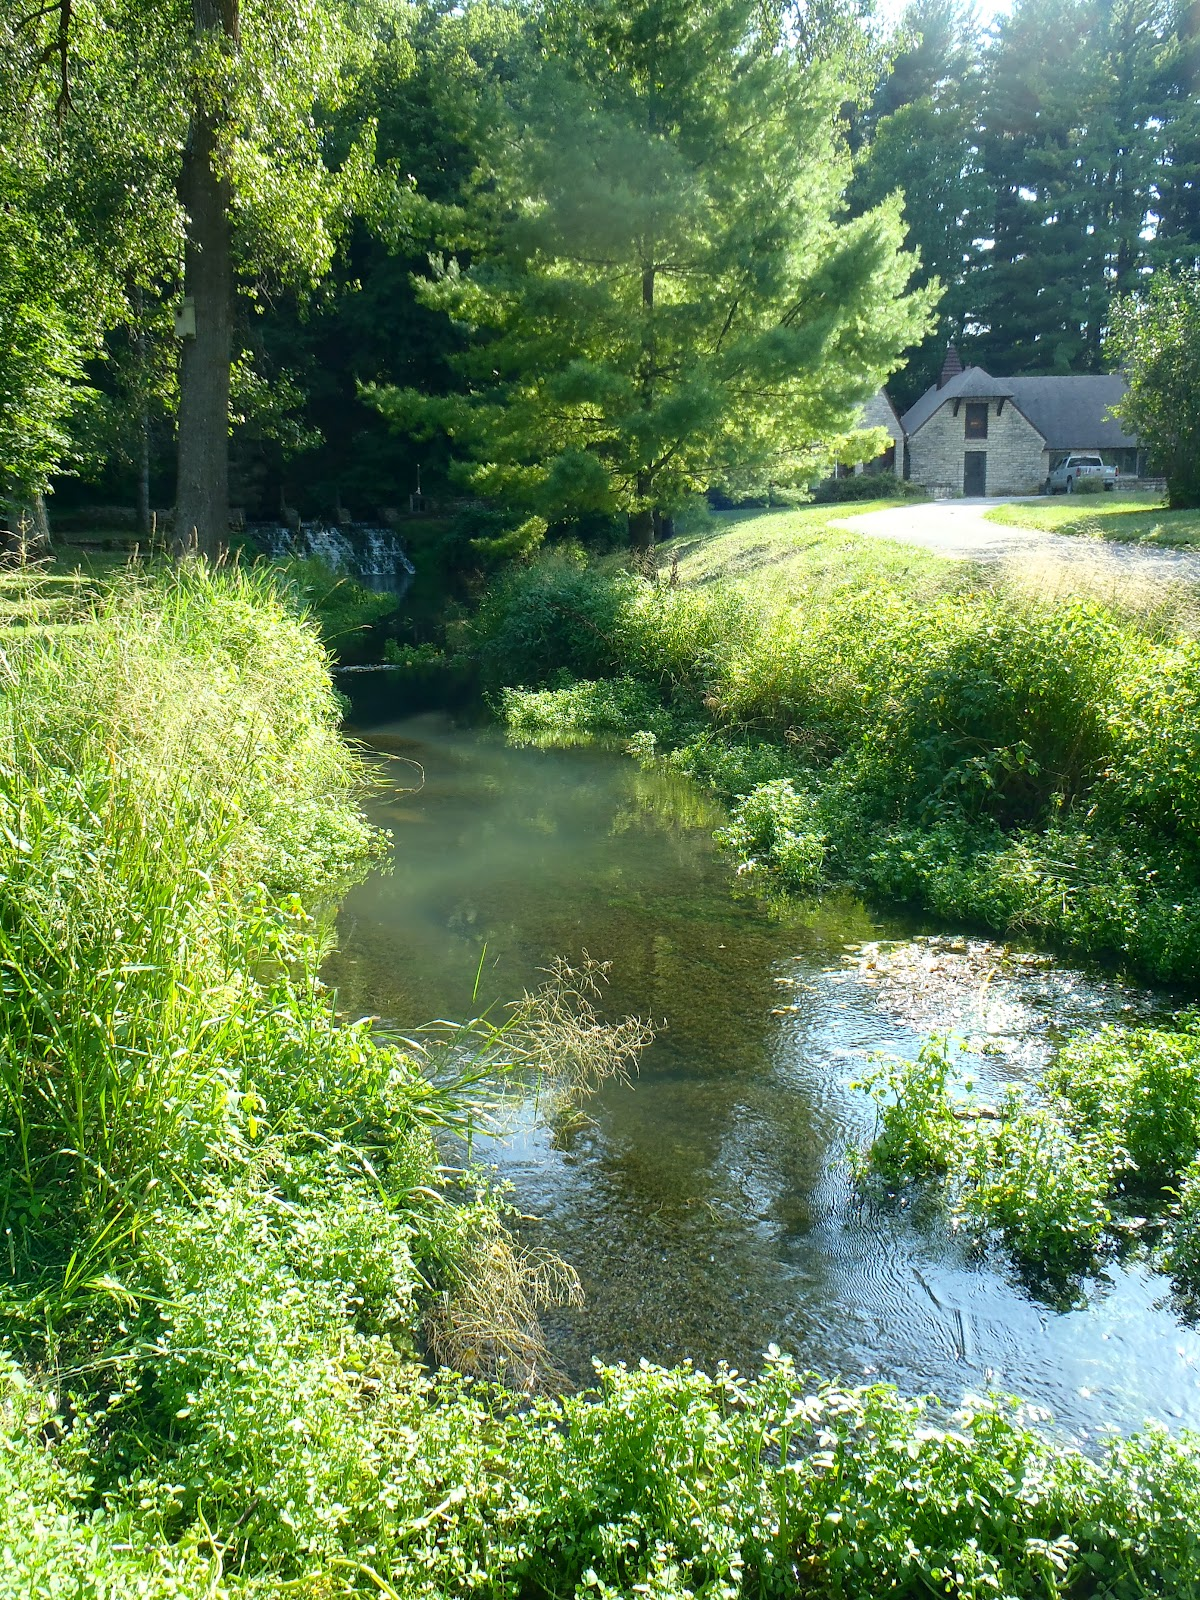 trout run Fly fishing trout run creek in the state of minnesota for trout it includes a trout run creek fly fishing report, trout run creek fly fishing guide and trout run creek hatches and trout flies.